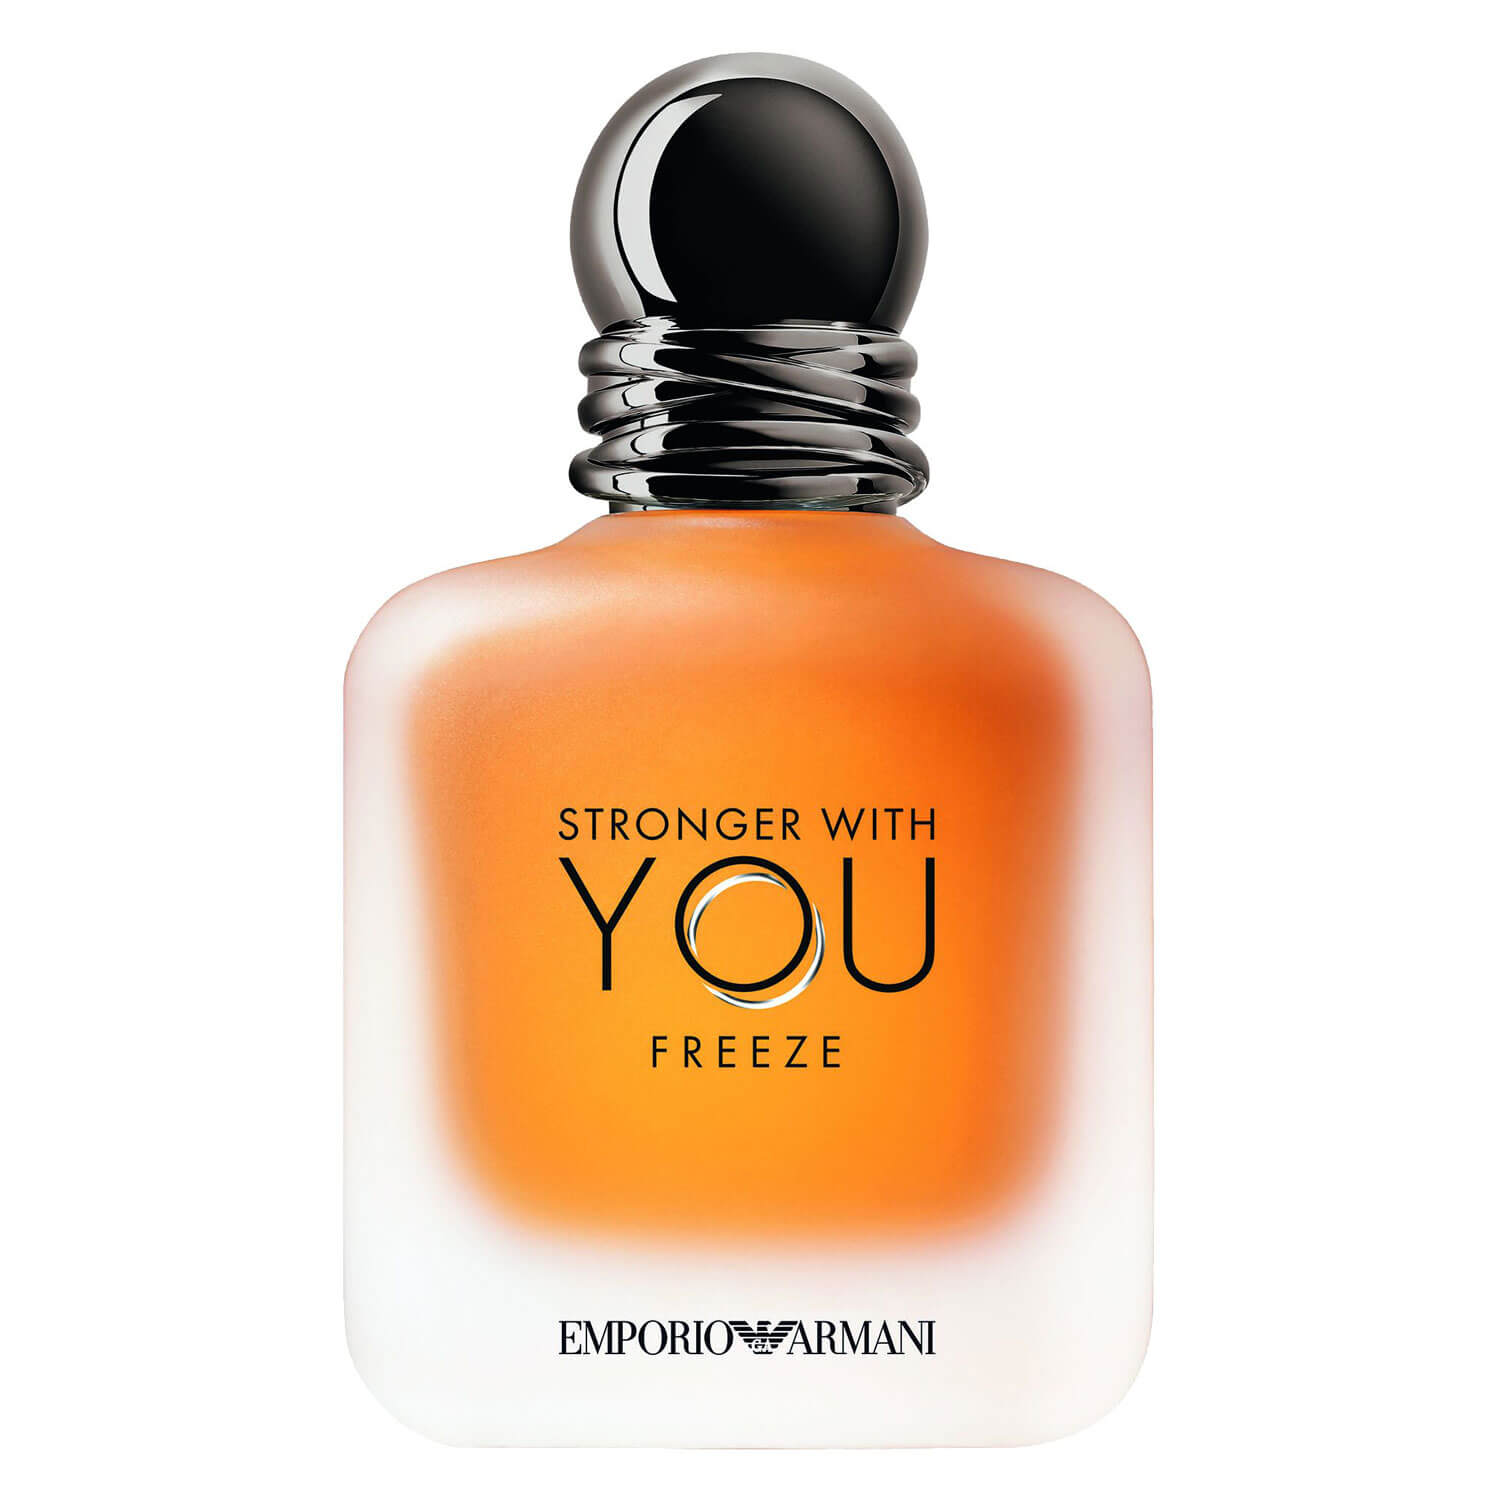 Emporio Armani - Stronger With You Freeze Eau de Toilette